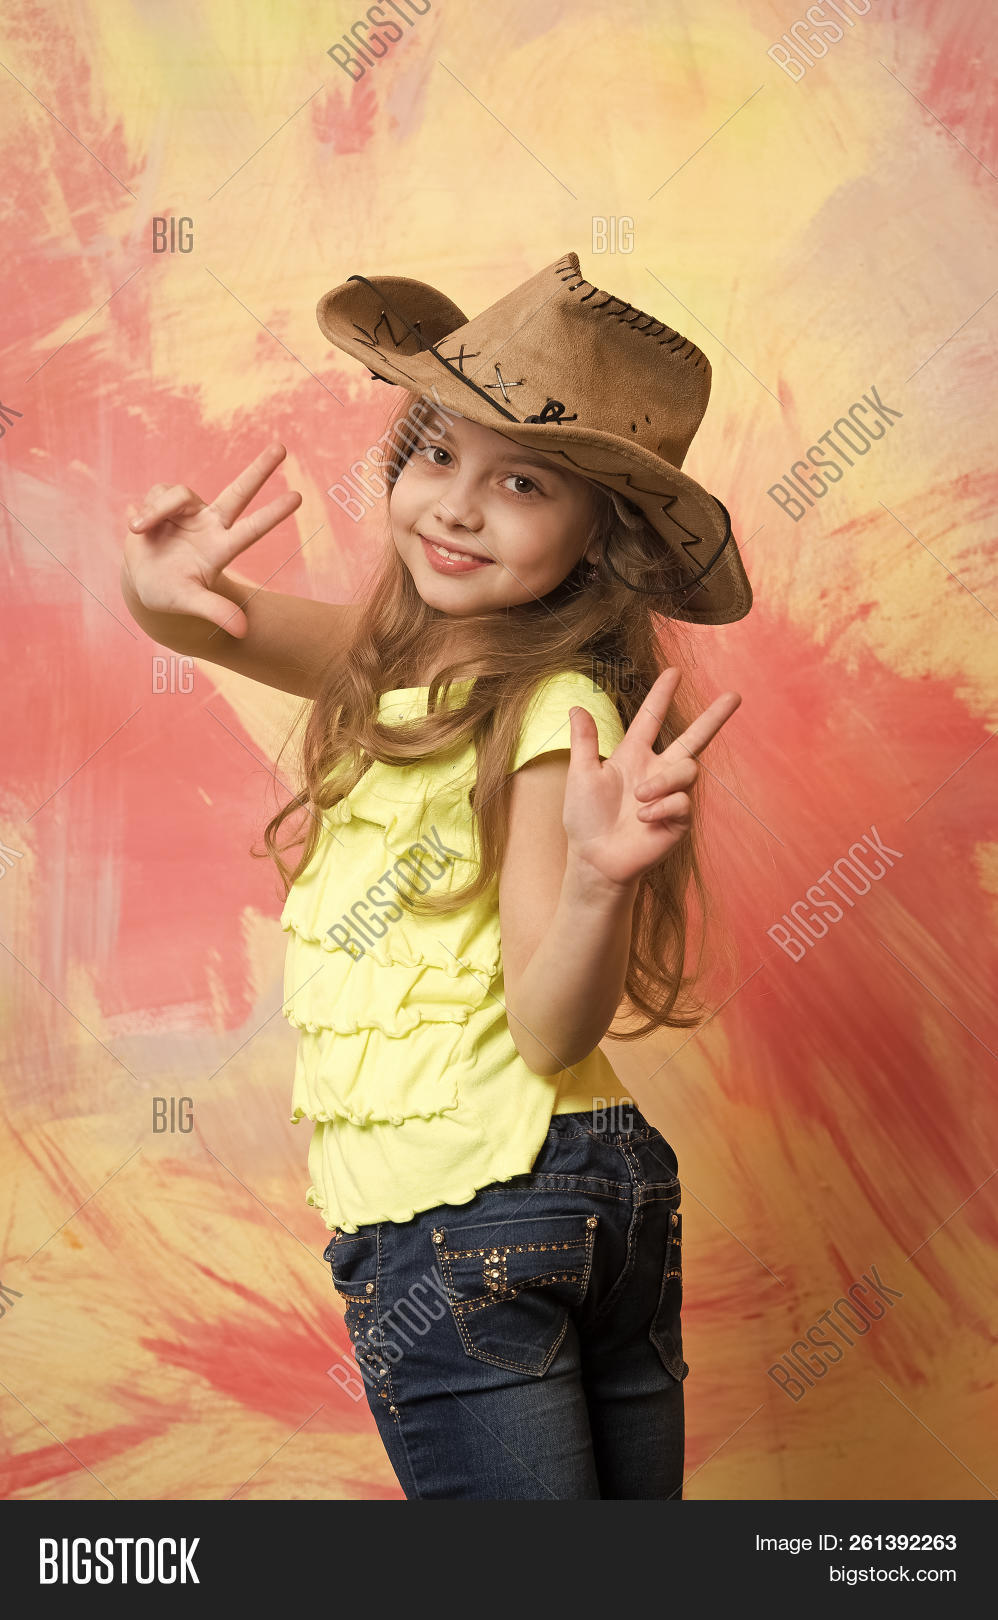 f544fad821d5c Cowgirl. Happy Child Or Little Girl In Cowboy Hat With Smiling Cute Face  And Raised